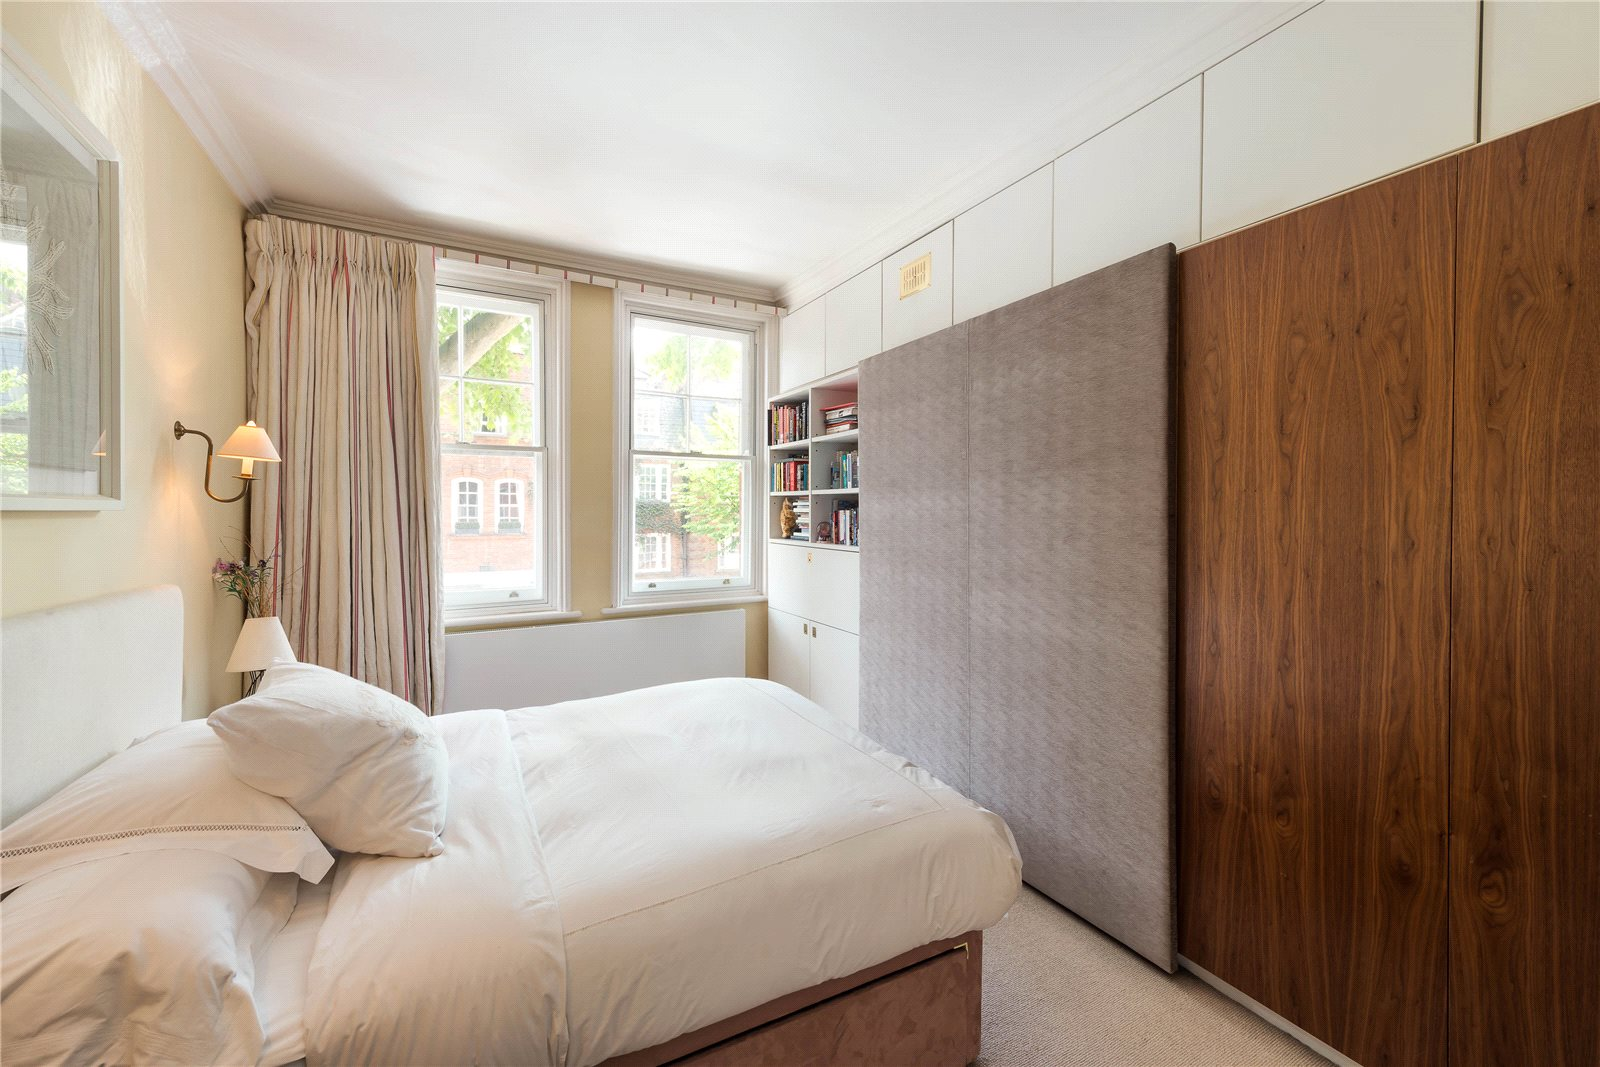 Additional photo for property listing at Cheyne Court, Royal Hospital Road, London, SW3 London, England